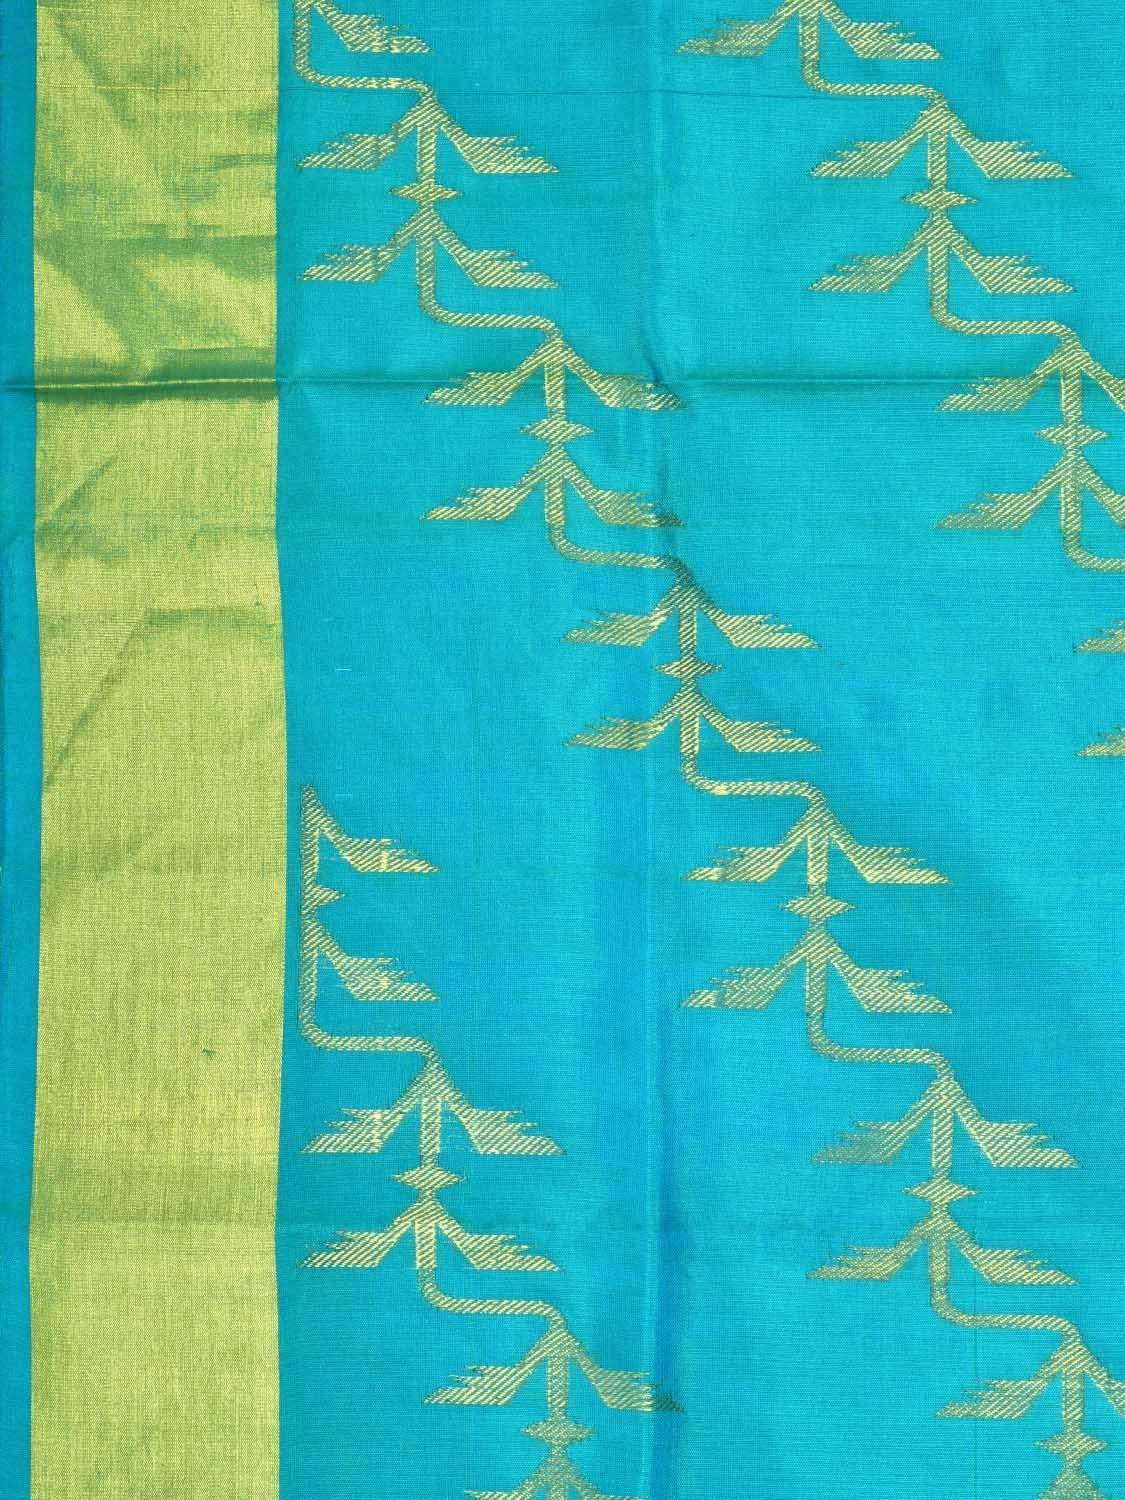 Turquoise Kanchipuram Silk Handloom Saree with All Over Diagonal Design k0470